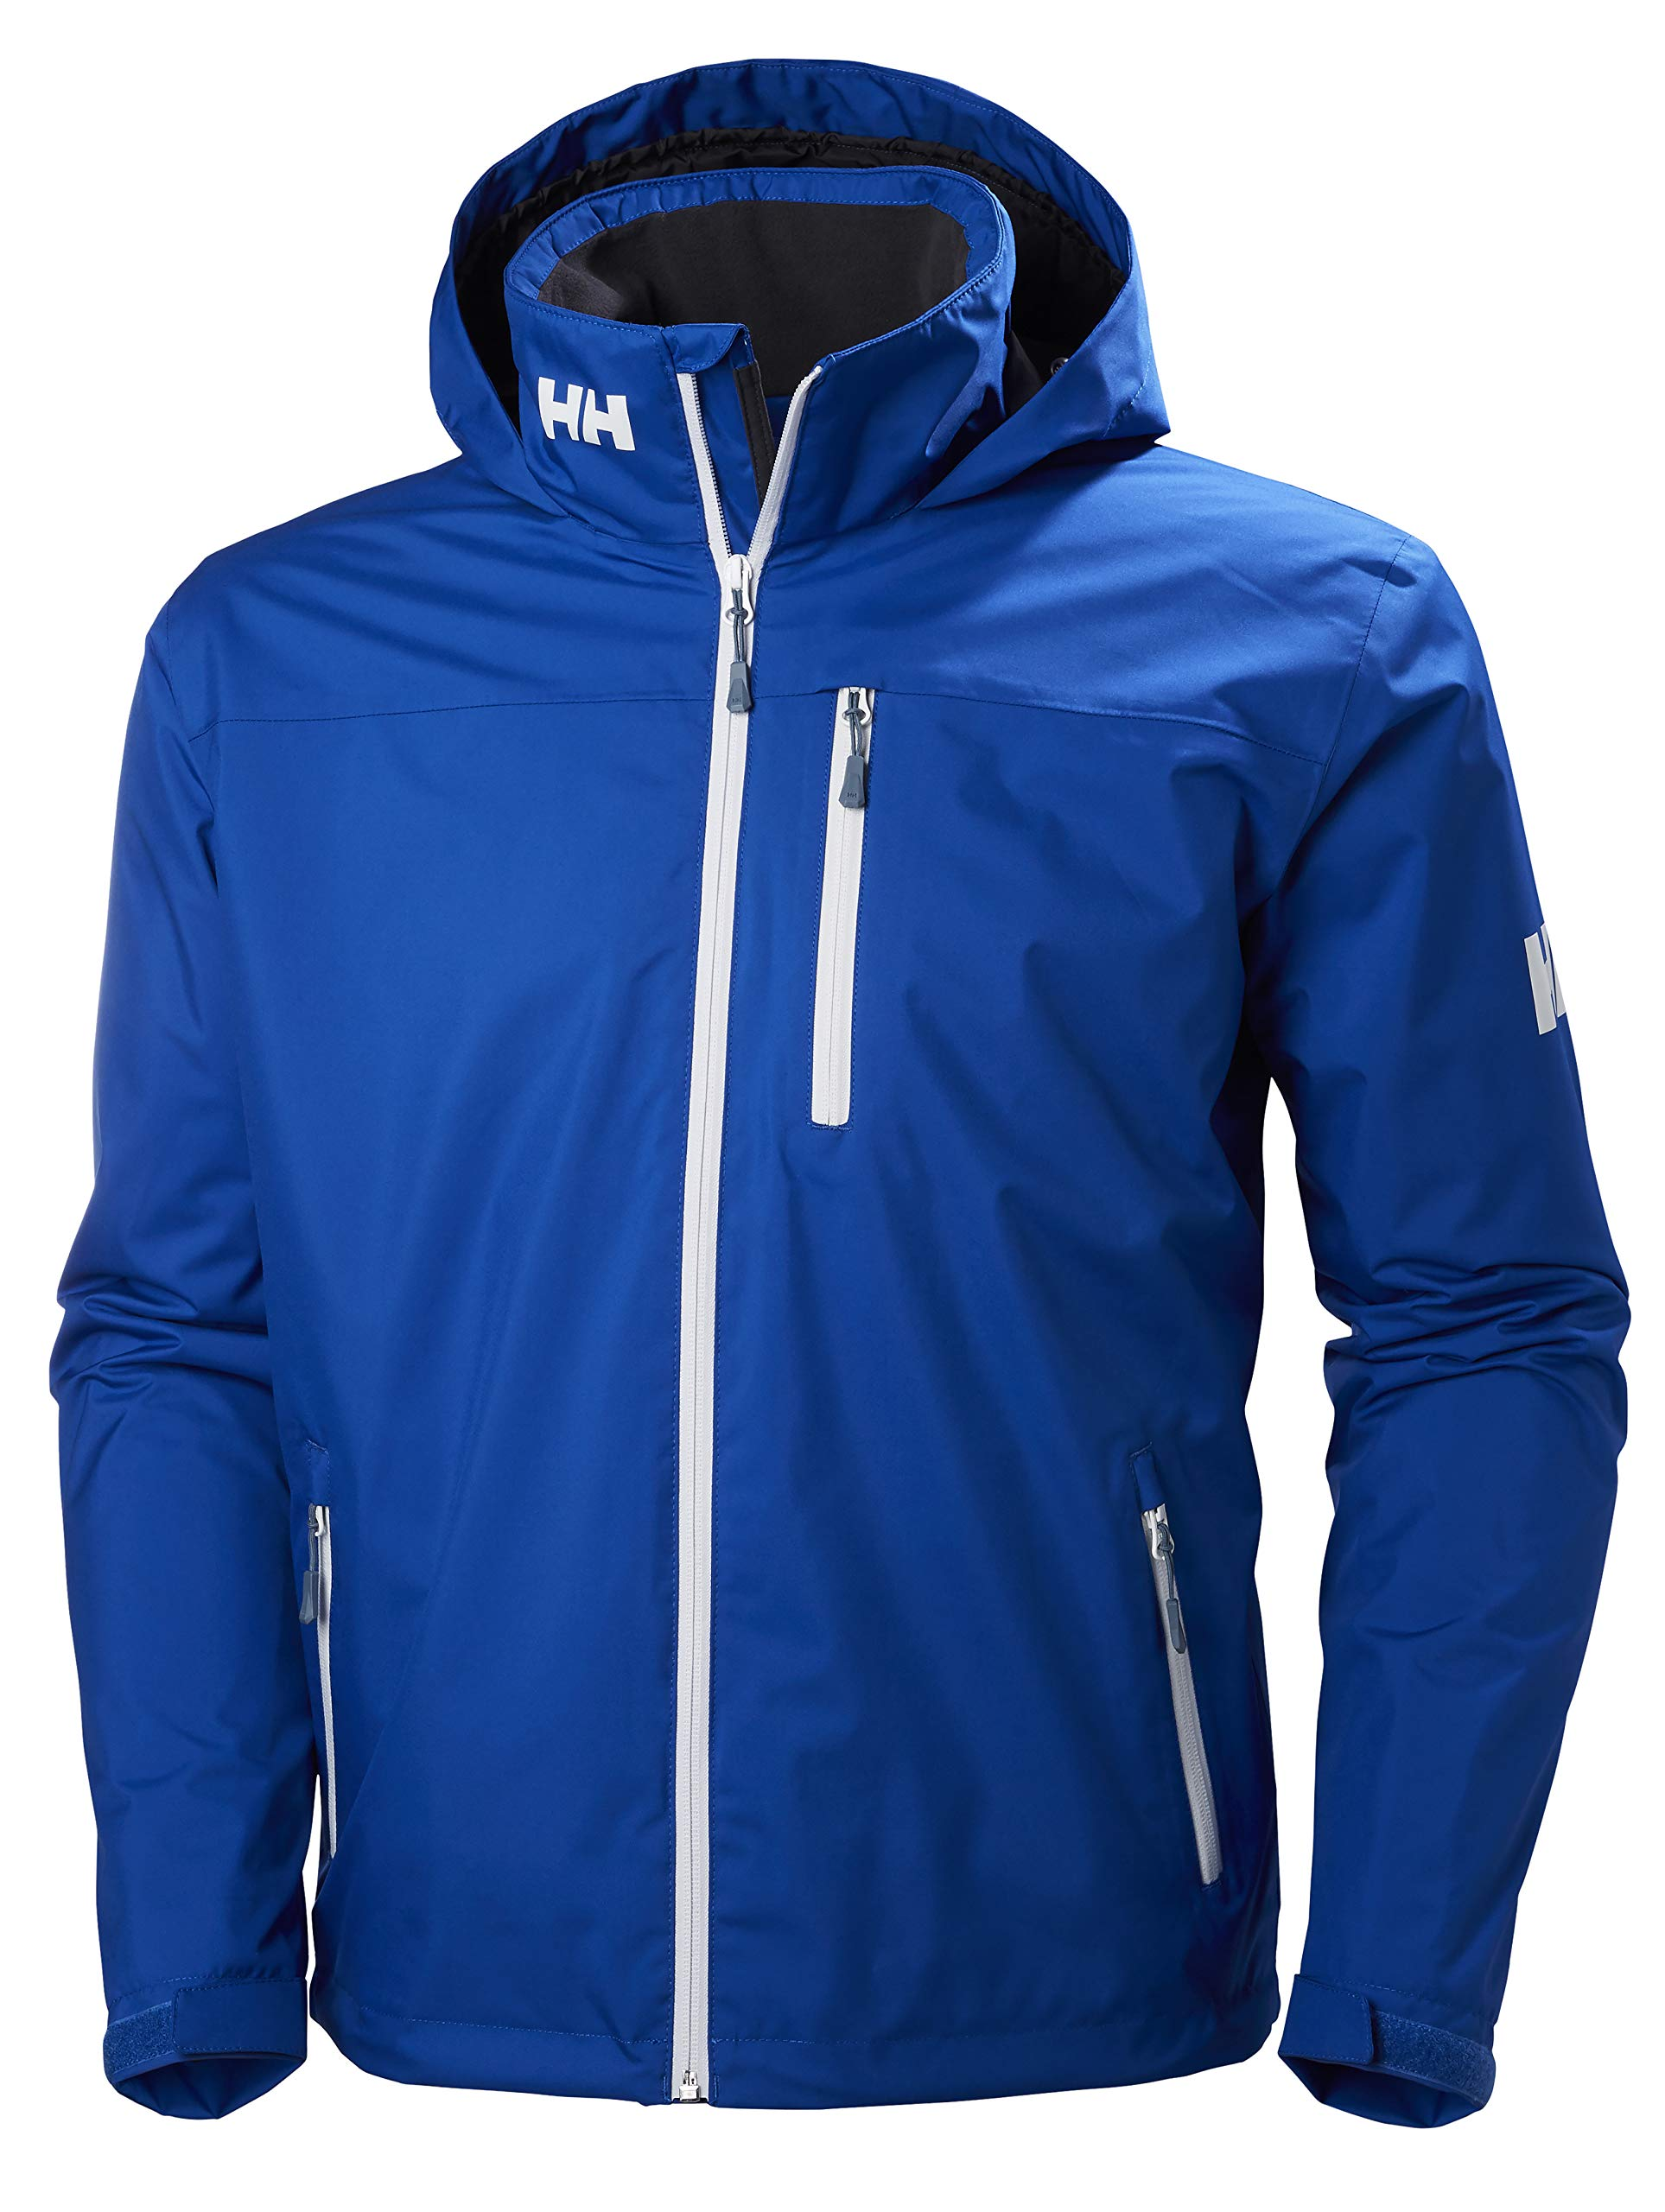 Helly Hansen Men's Crew Hooded Midlayer Jacket, 563 Olympian Blue, 4X-Large by Helly Hansen